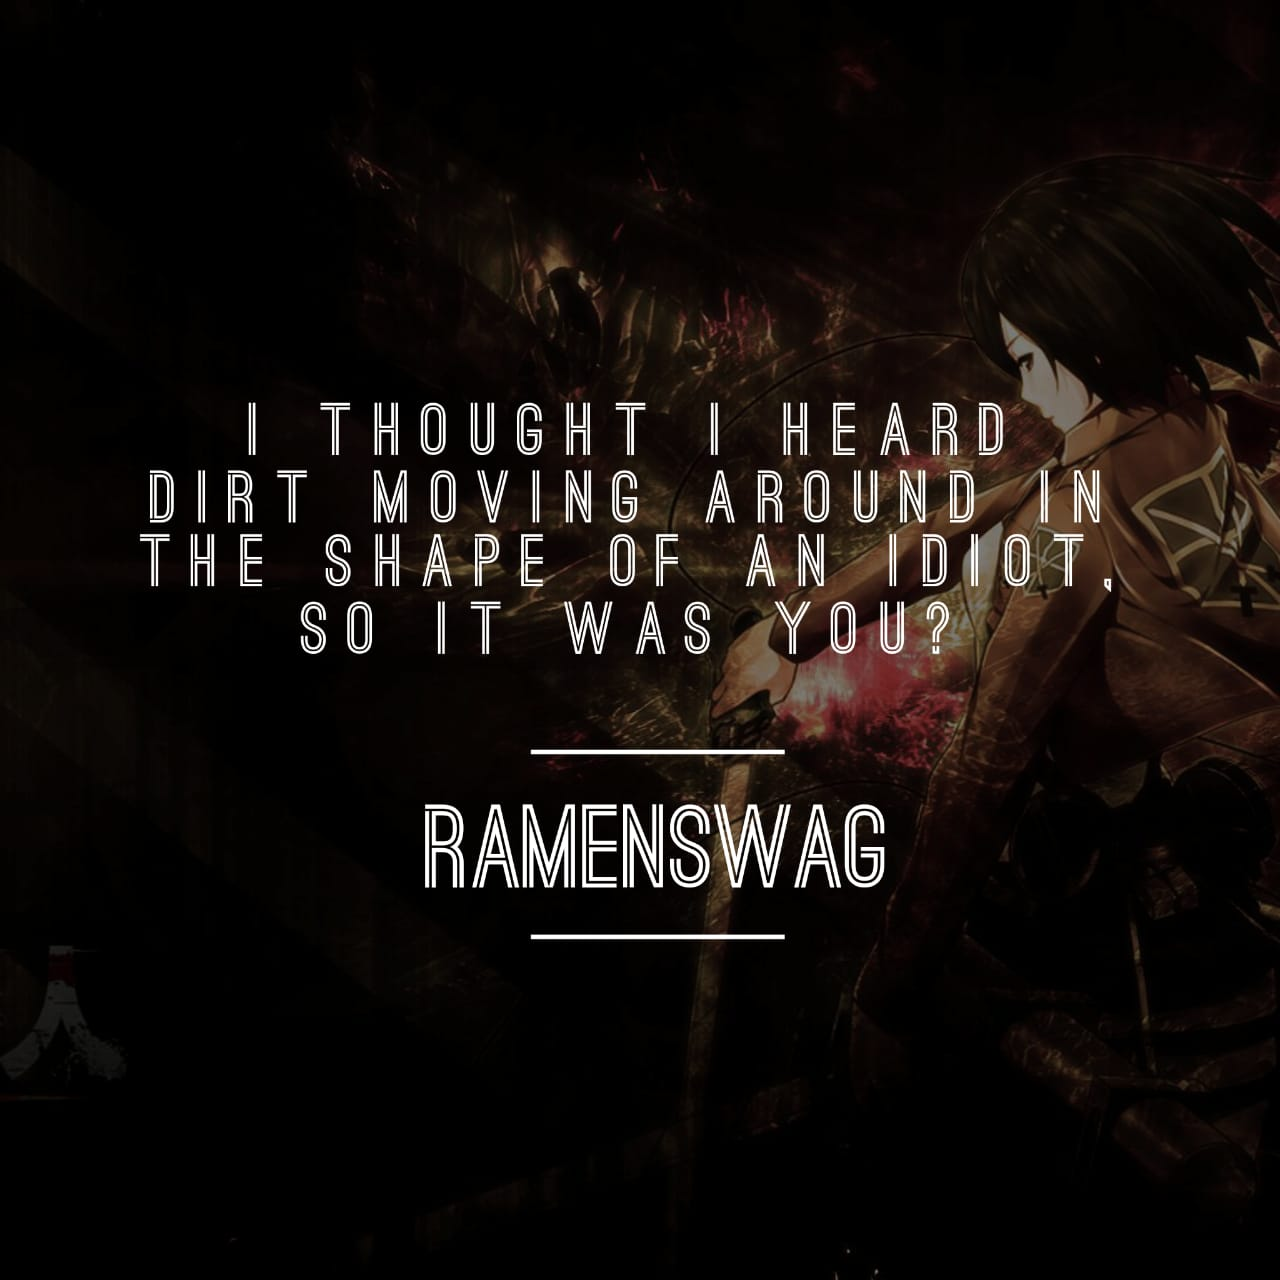 11 Attack On Titan Quotes Wallpaper To Kickstart Your Day The Ramenswag